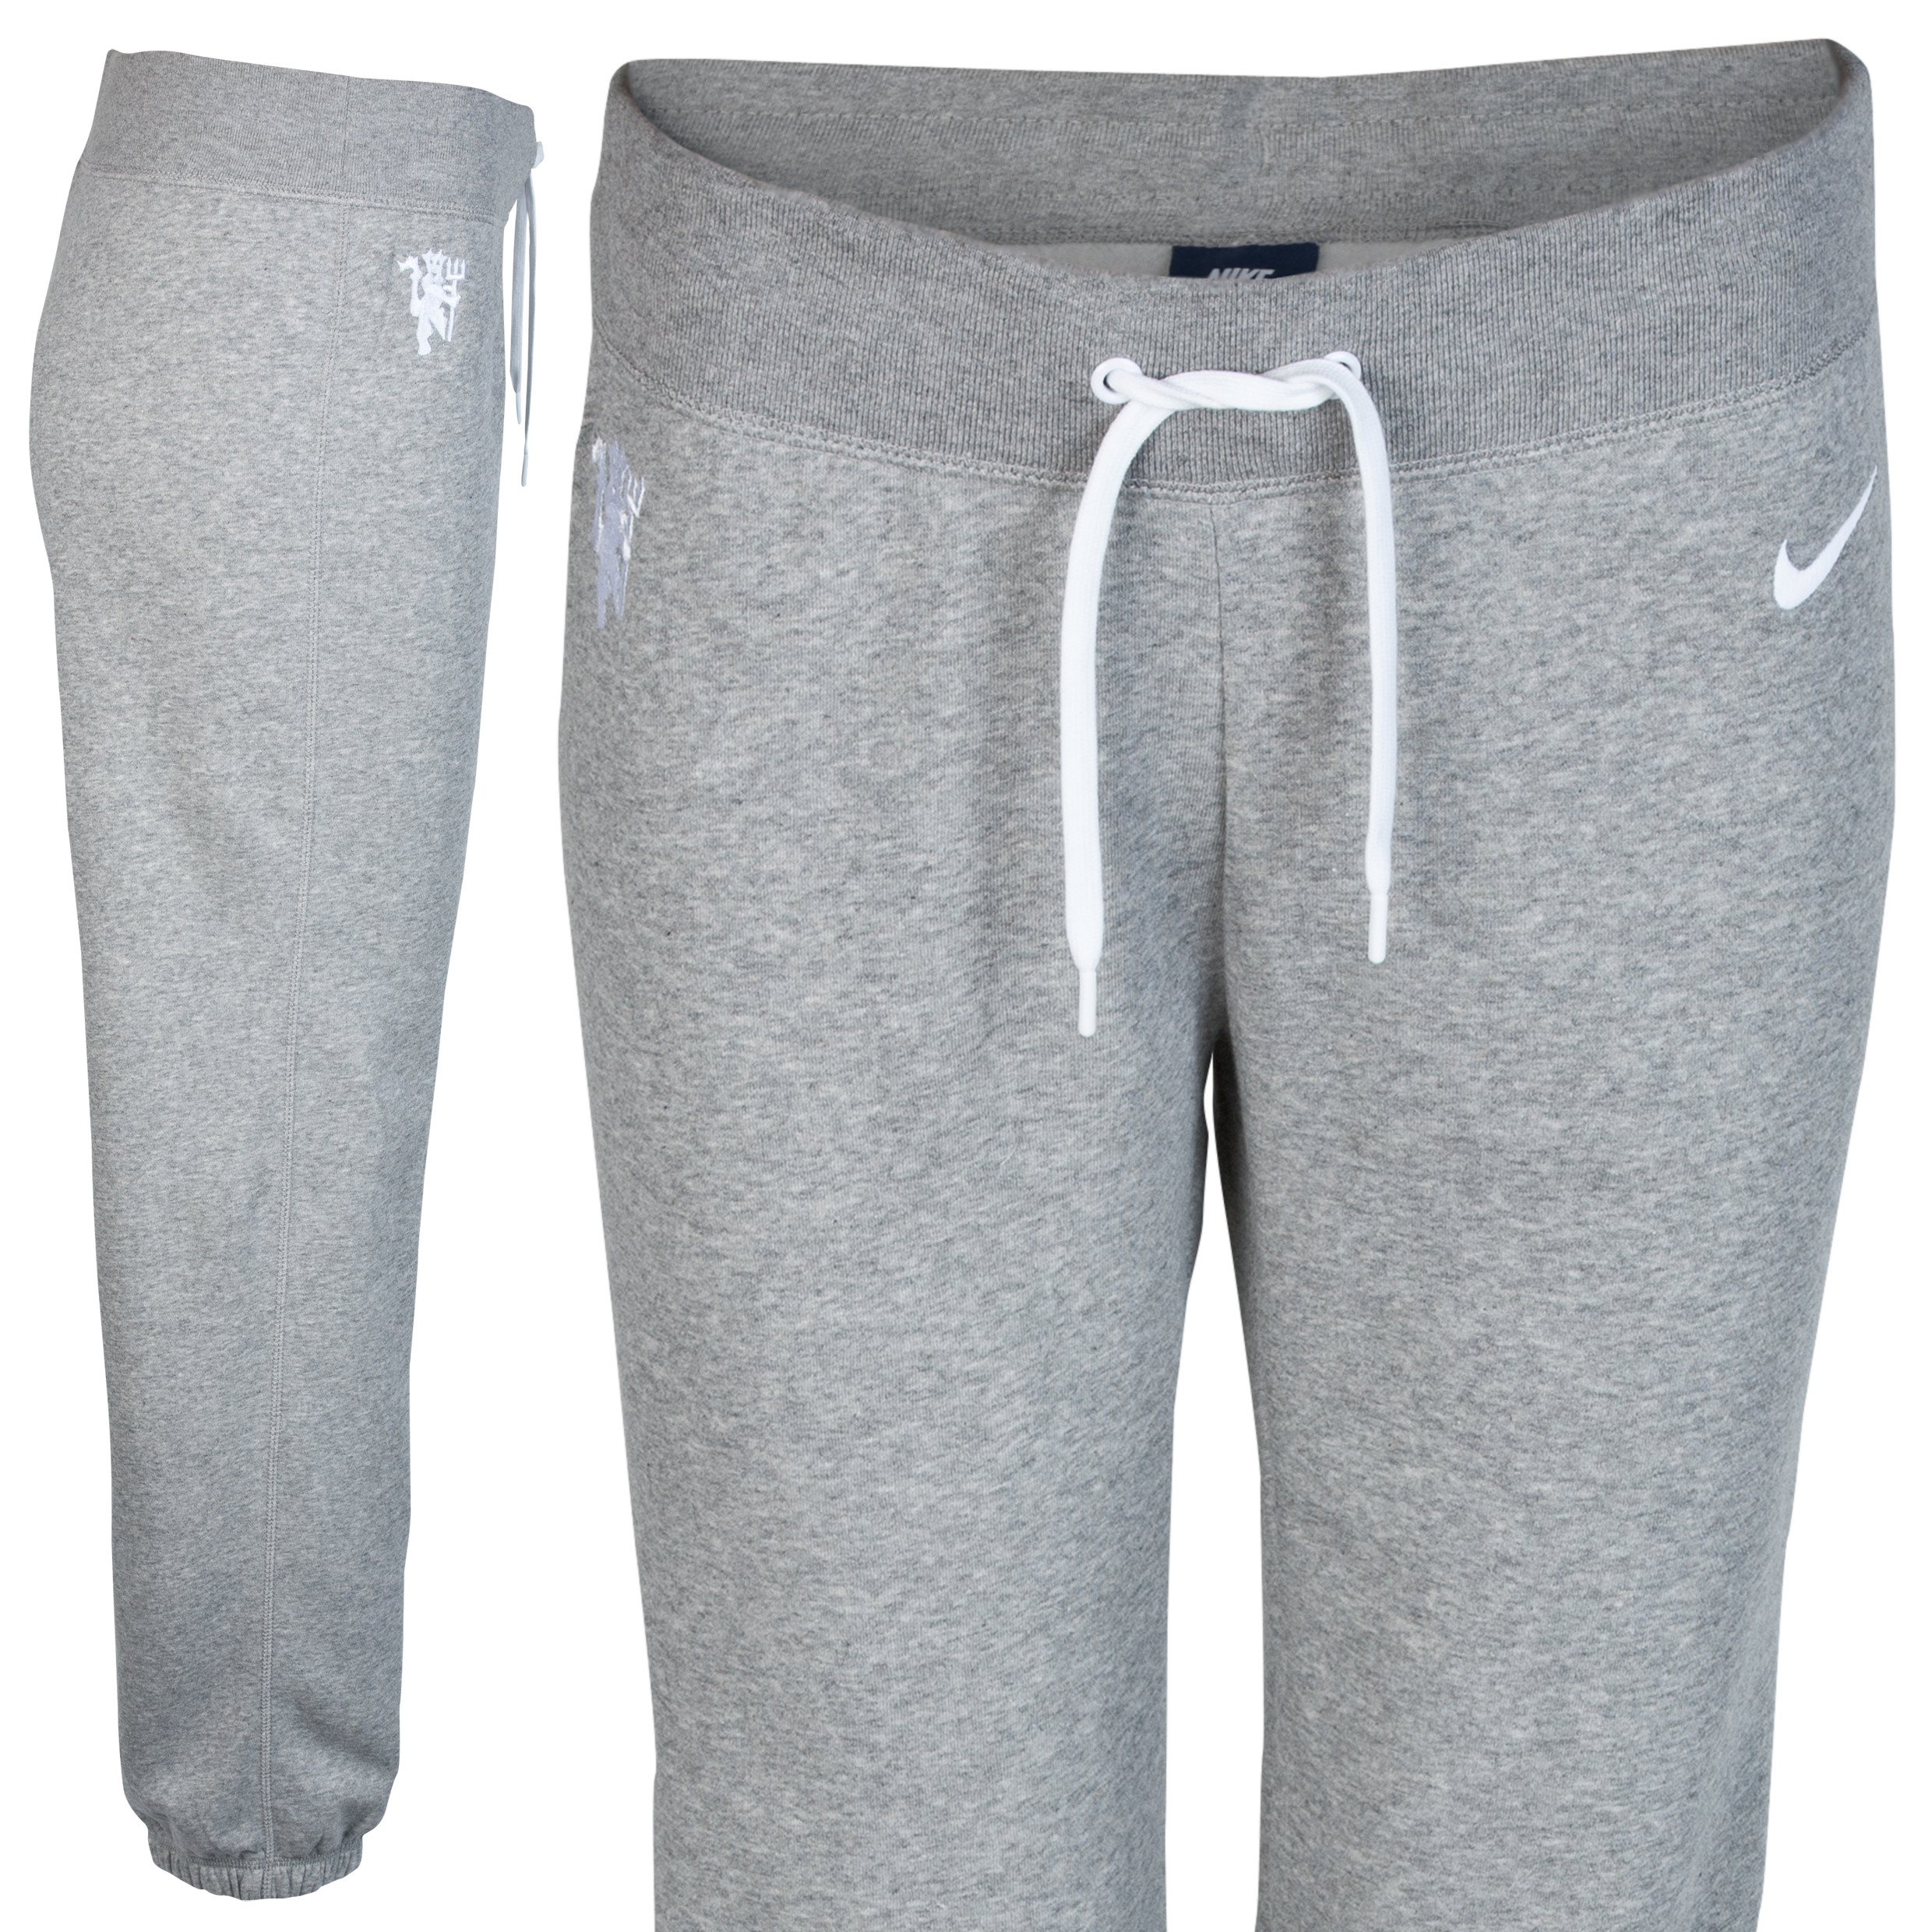 Manchester United Club Pant - Dark Grey Heather/White - Womens Dk Grey